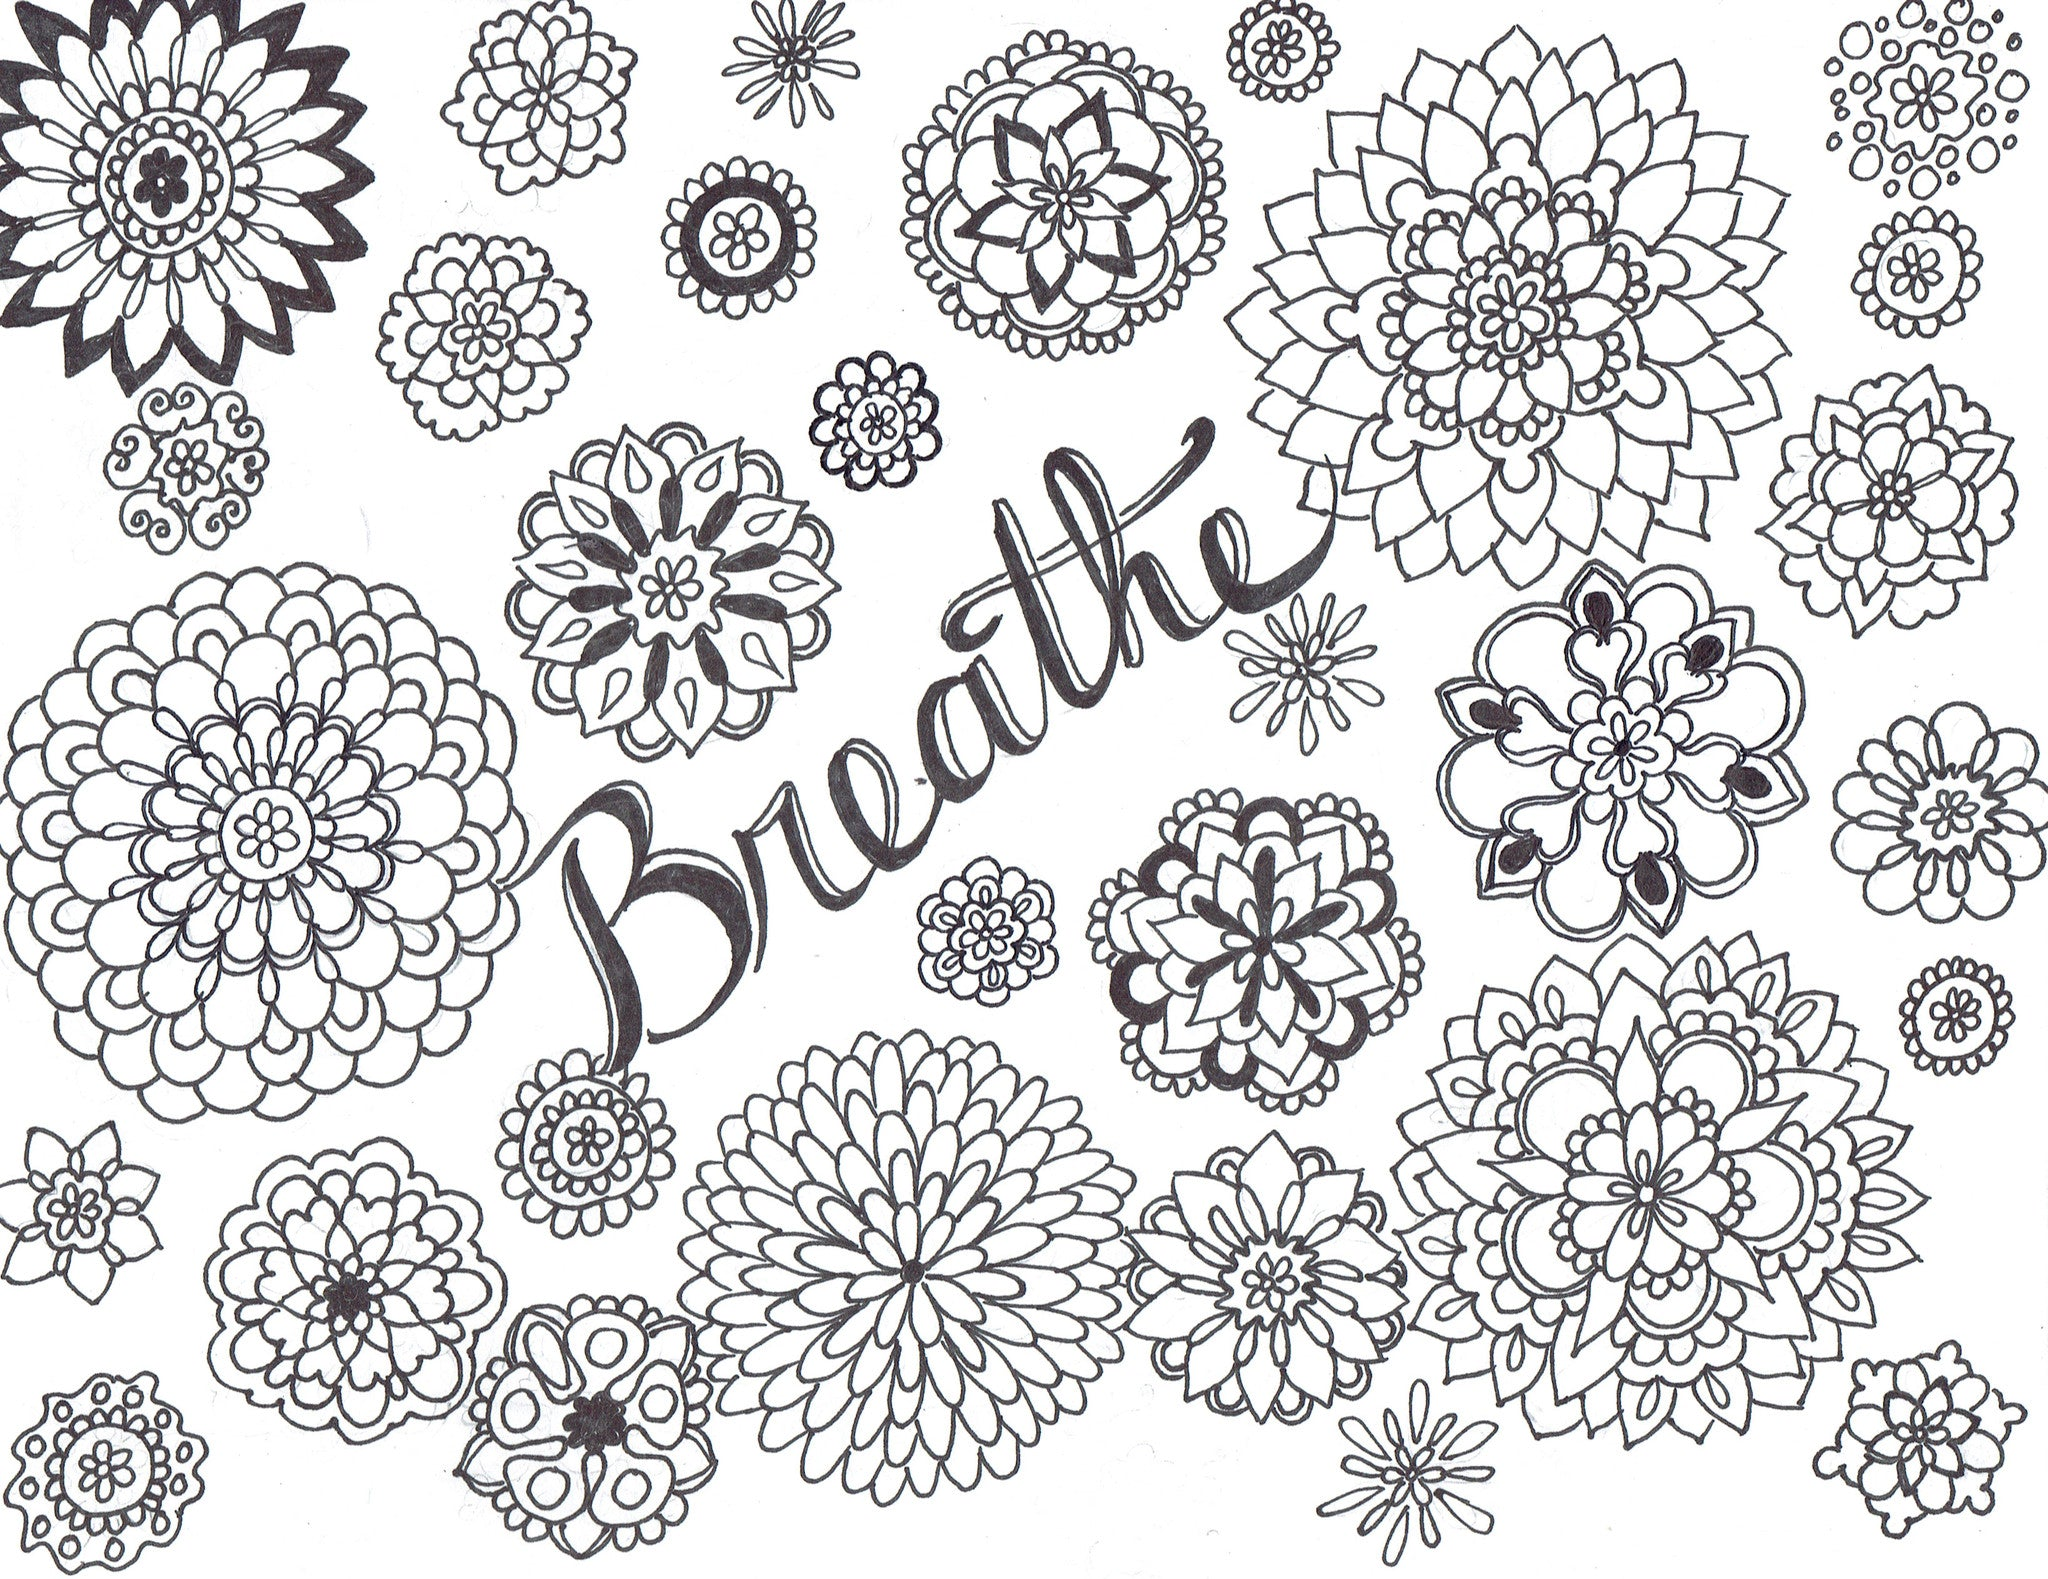 Breathe For Your Life - You-Color